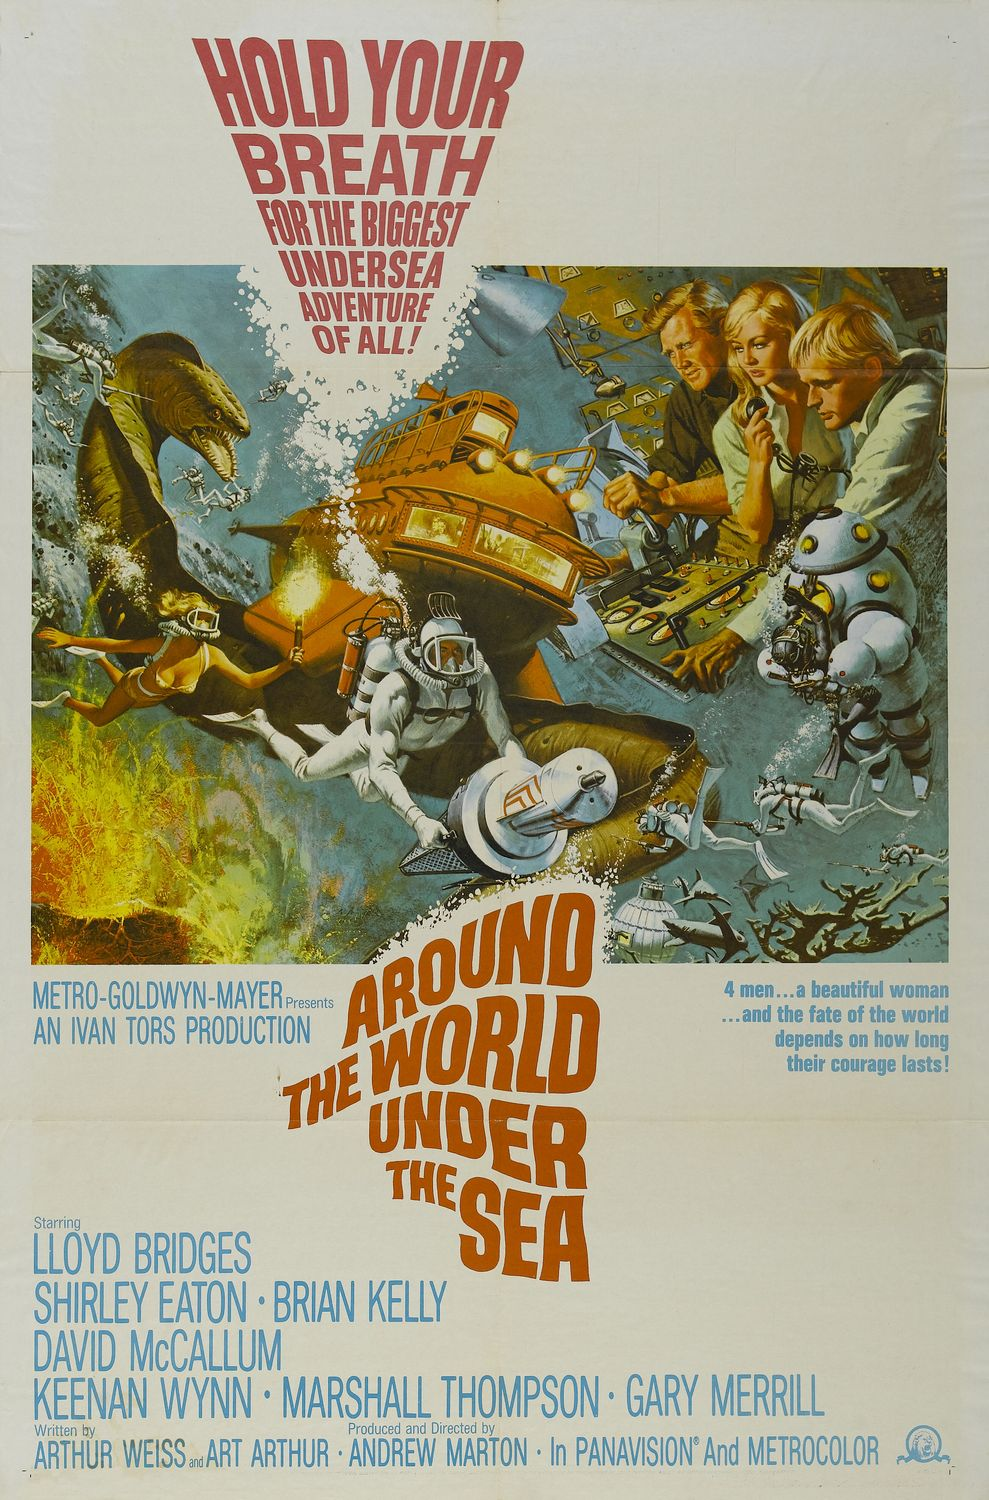 around_the_world_under_the_sea_poster_1966_01.jpg